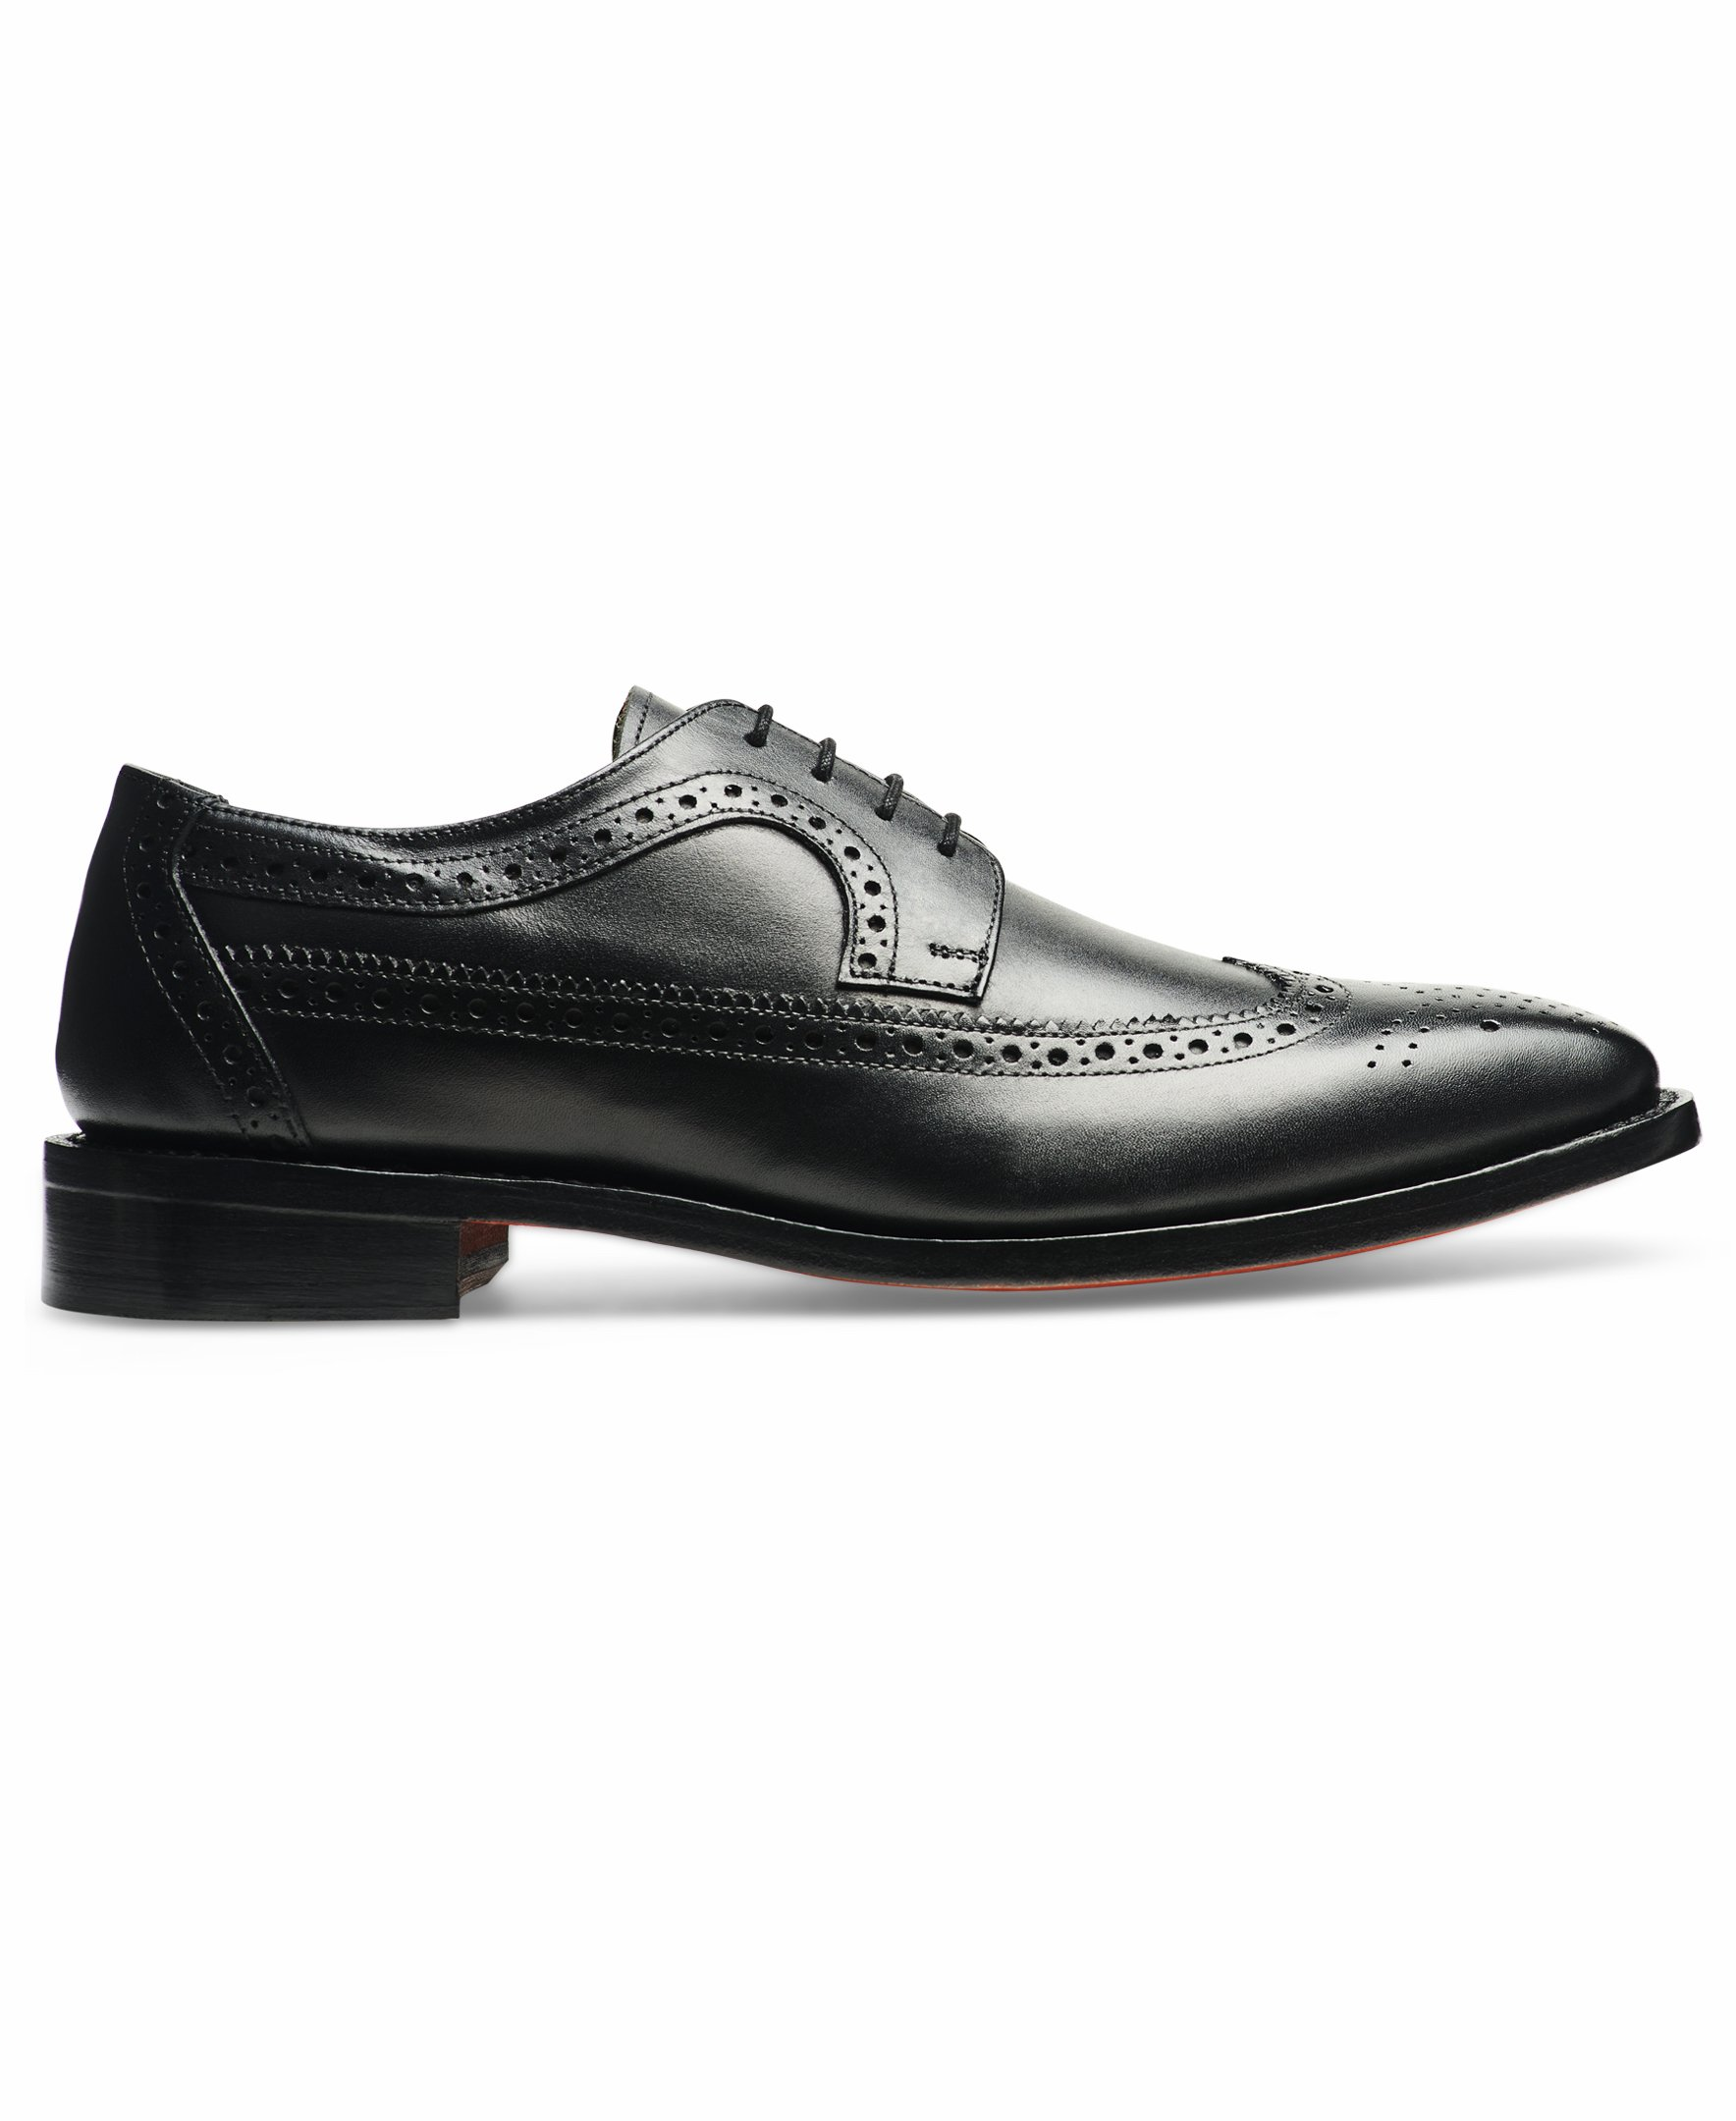 Anthony Veer Mens Regan Oxford Full Brogue Leather Shoes in Goodyear Welted Construction (8.5 D, Black) by Anthony Veer (Image #2)